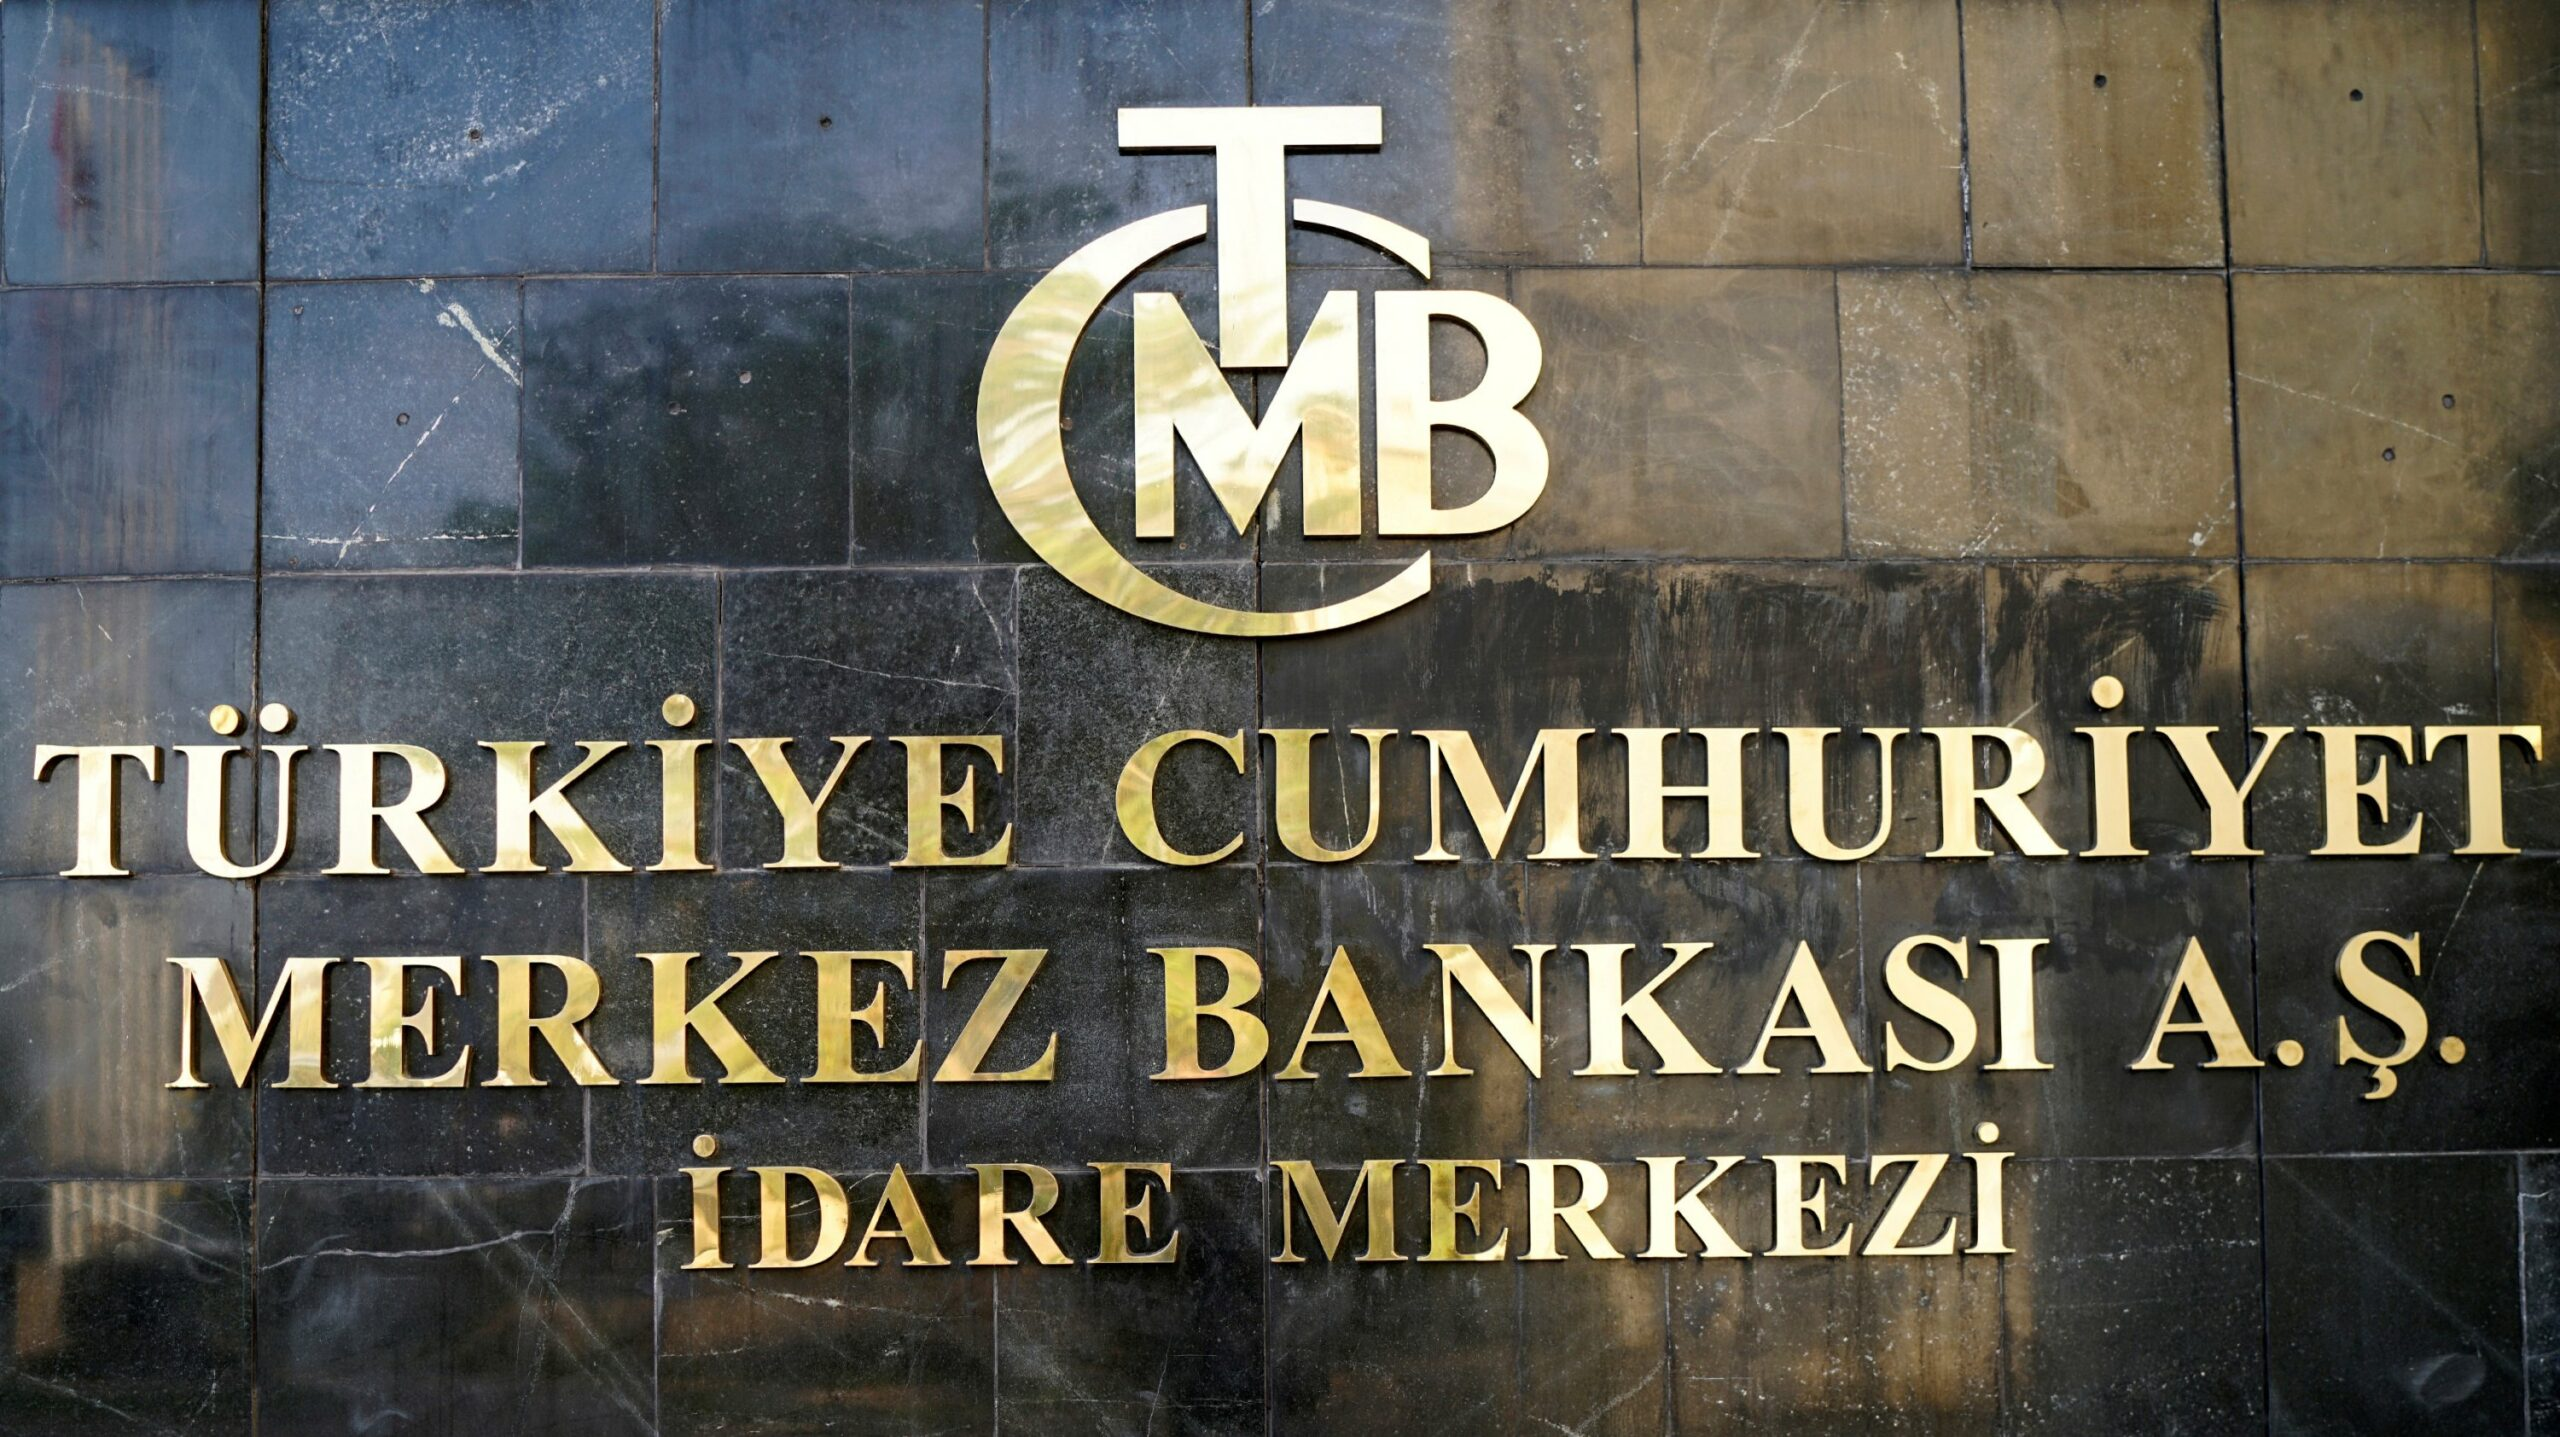 Turkey: Another currency crisis